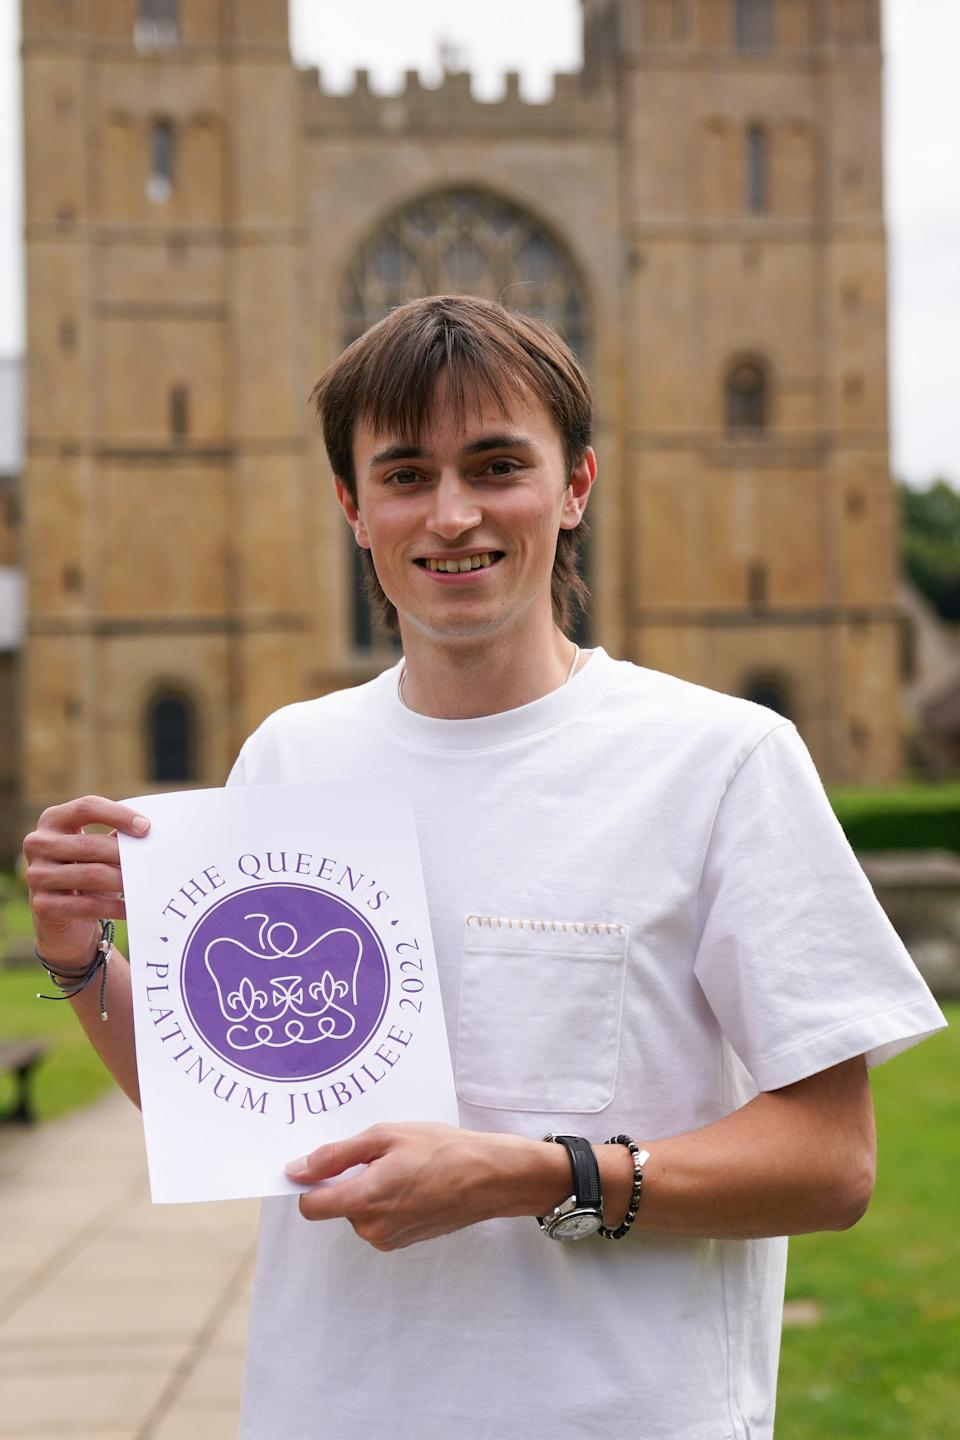 Embargoed to 0001 BST Tuesday August 3, 2021. Edward Roberts in the grounds of Southwell Minster in Nottinghamshire with his winning design for The Queen's Platinum Jubilee Emblem Competition. In 2022 Queen Elizabeth II will become the first British Monarch to celebrate a Platinum Jubilee - seventy years of service - having acceded to the throne on 6th February 1952. Picture date: Monday August 2, 2021.